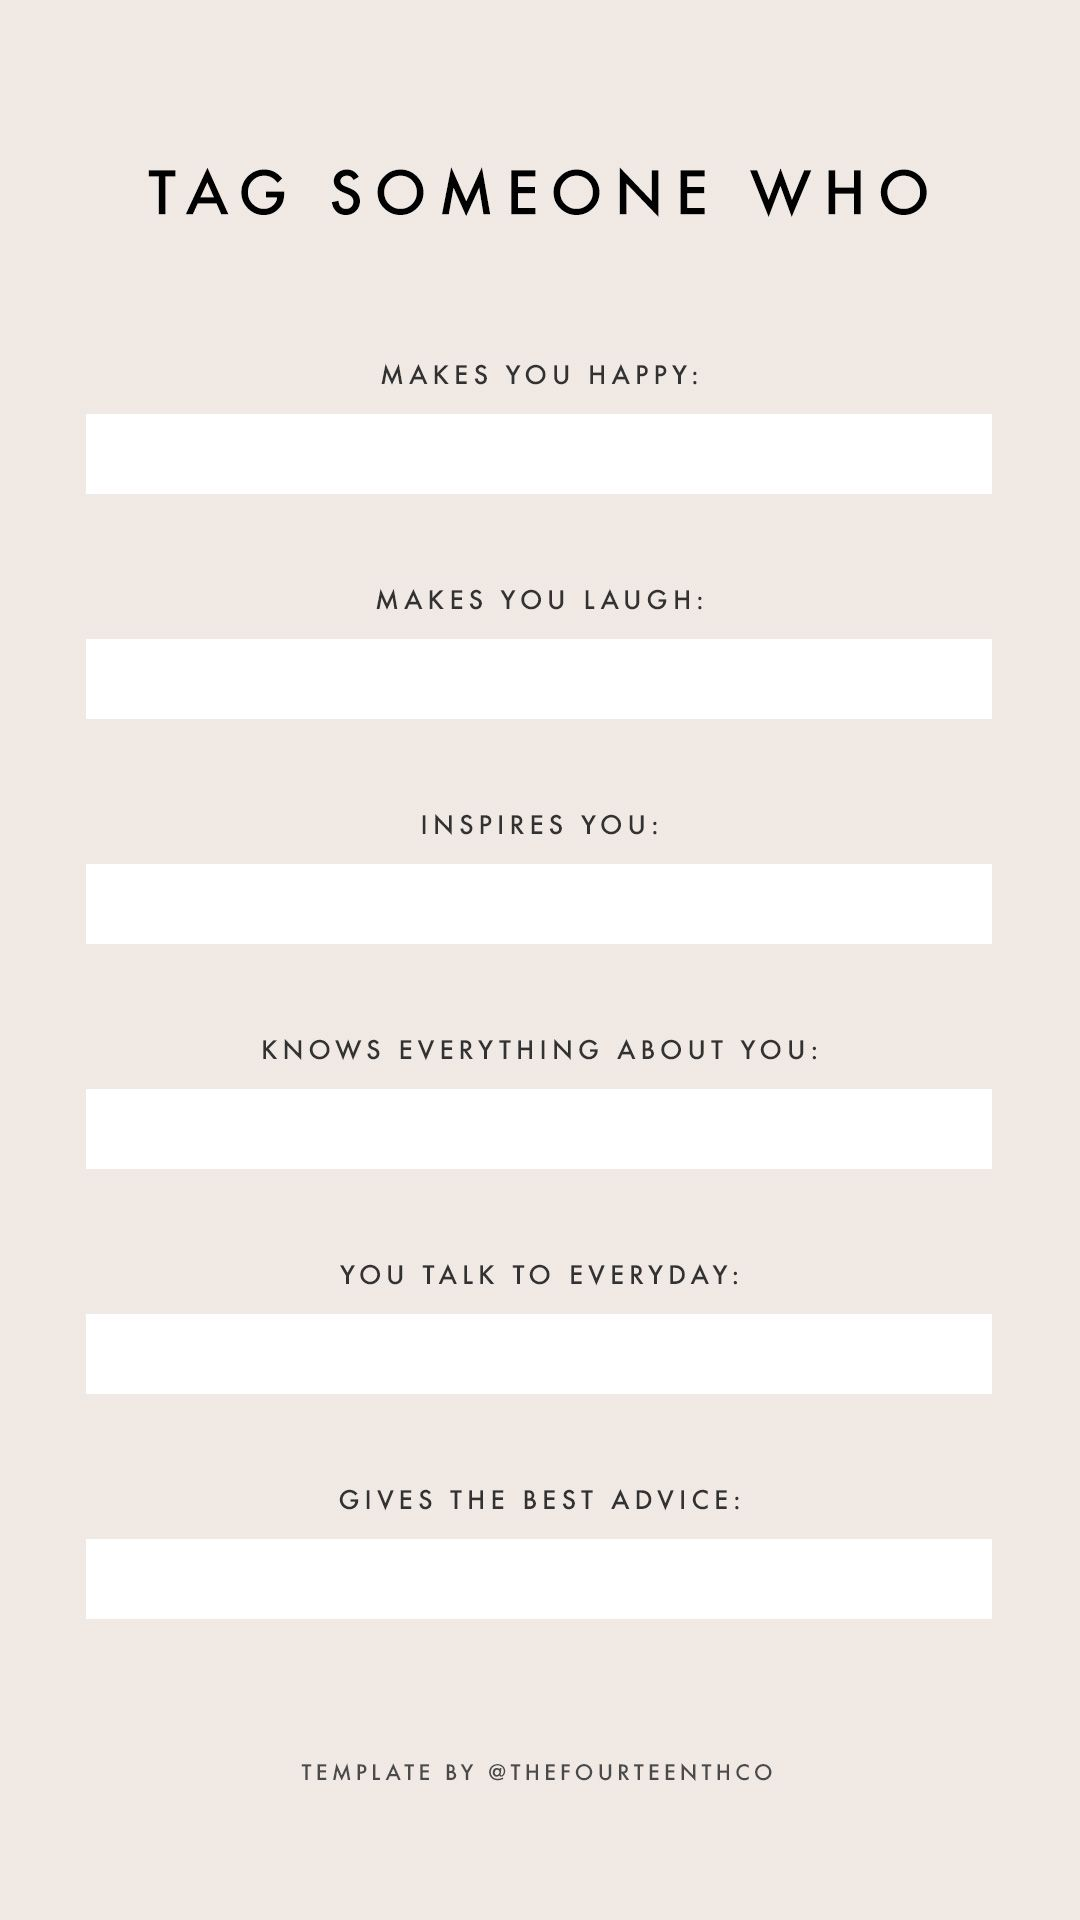 Instagram Story Template Questions Tag Someone Who Instagram Questions Instagram Story Template Instagram Story Questions